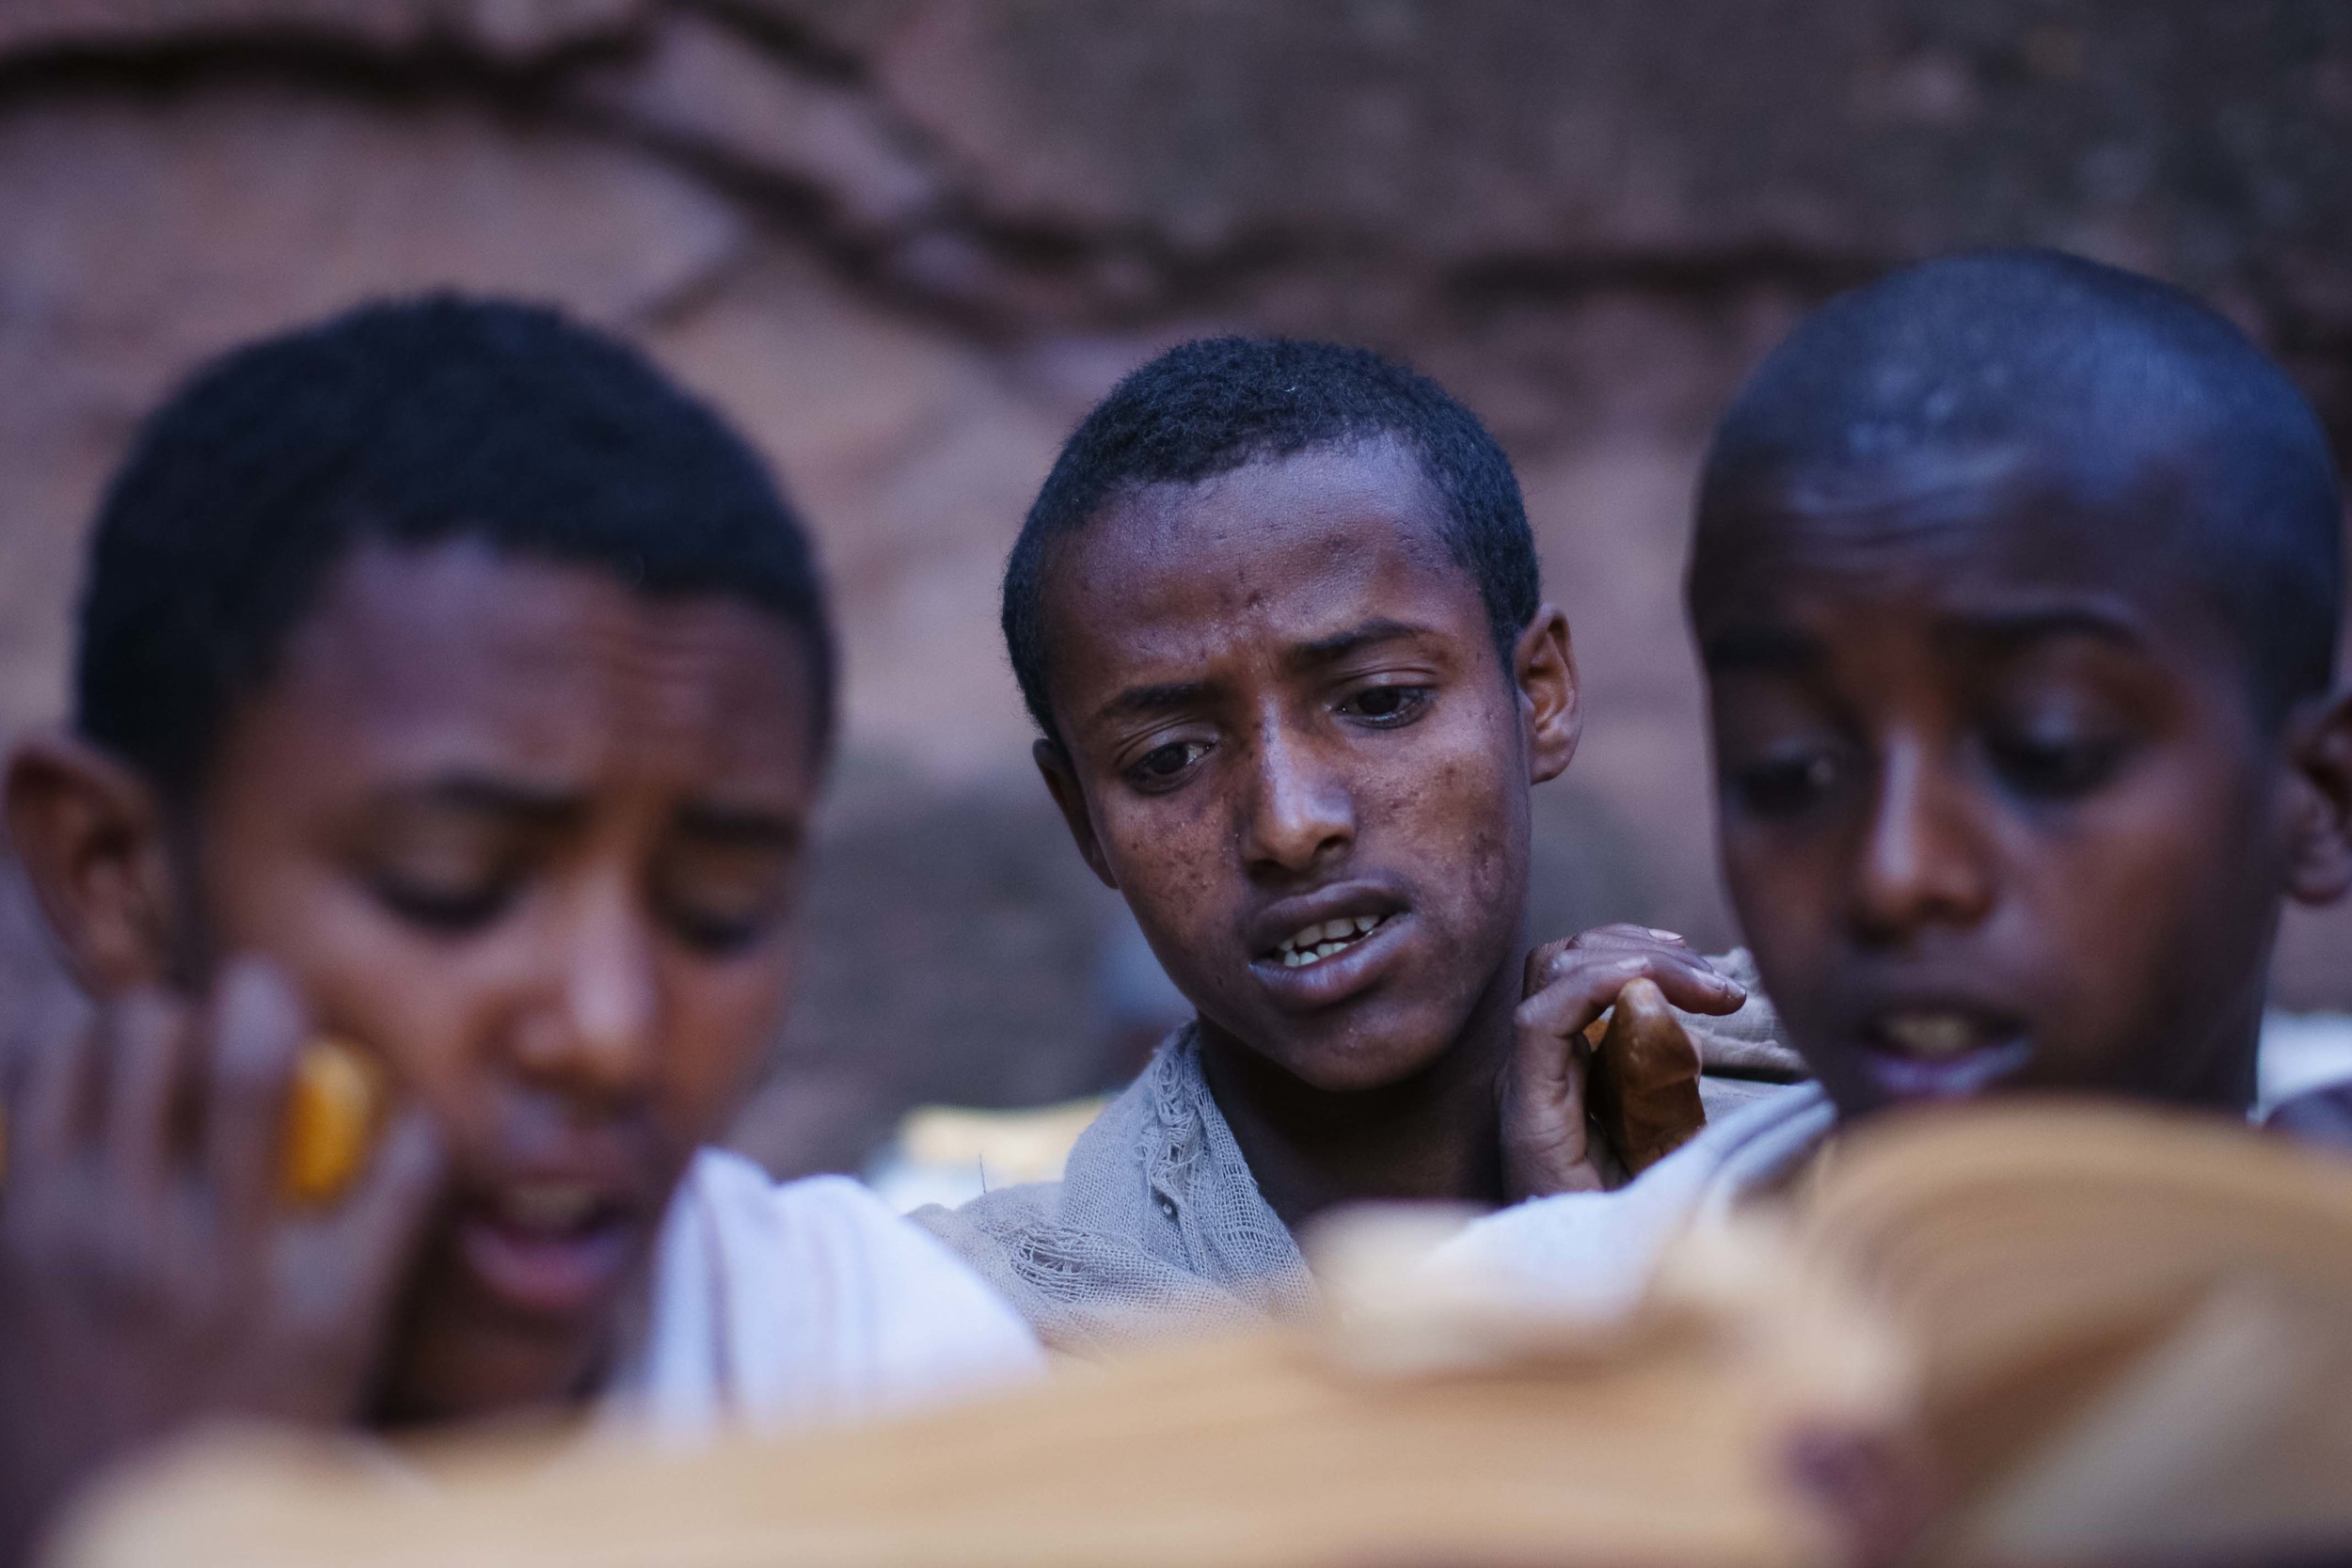 A group of young boys read from the Bible as priests sing around them.